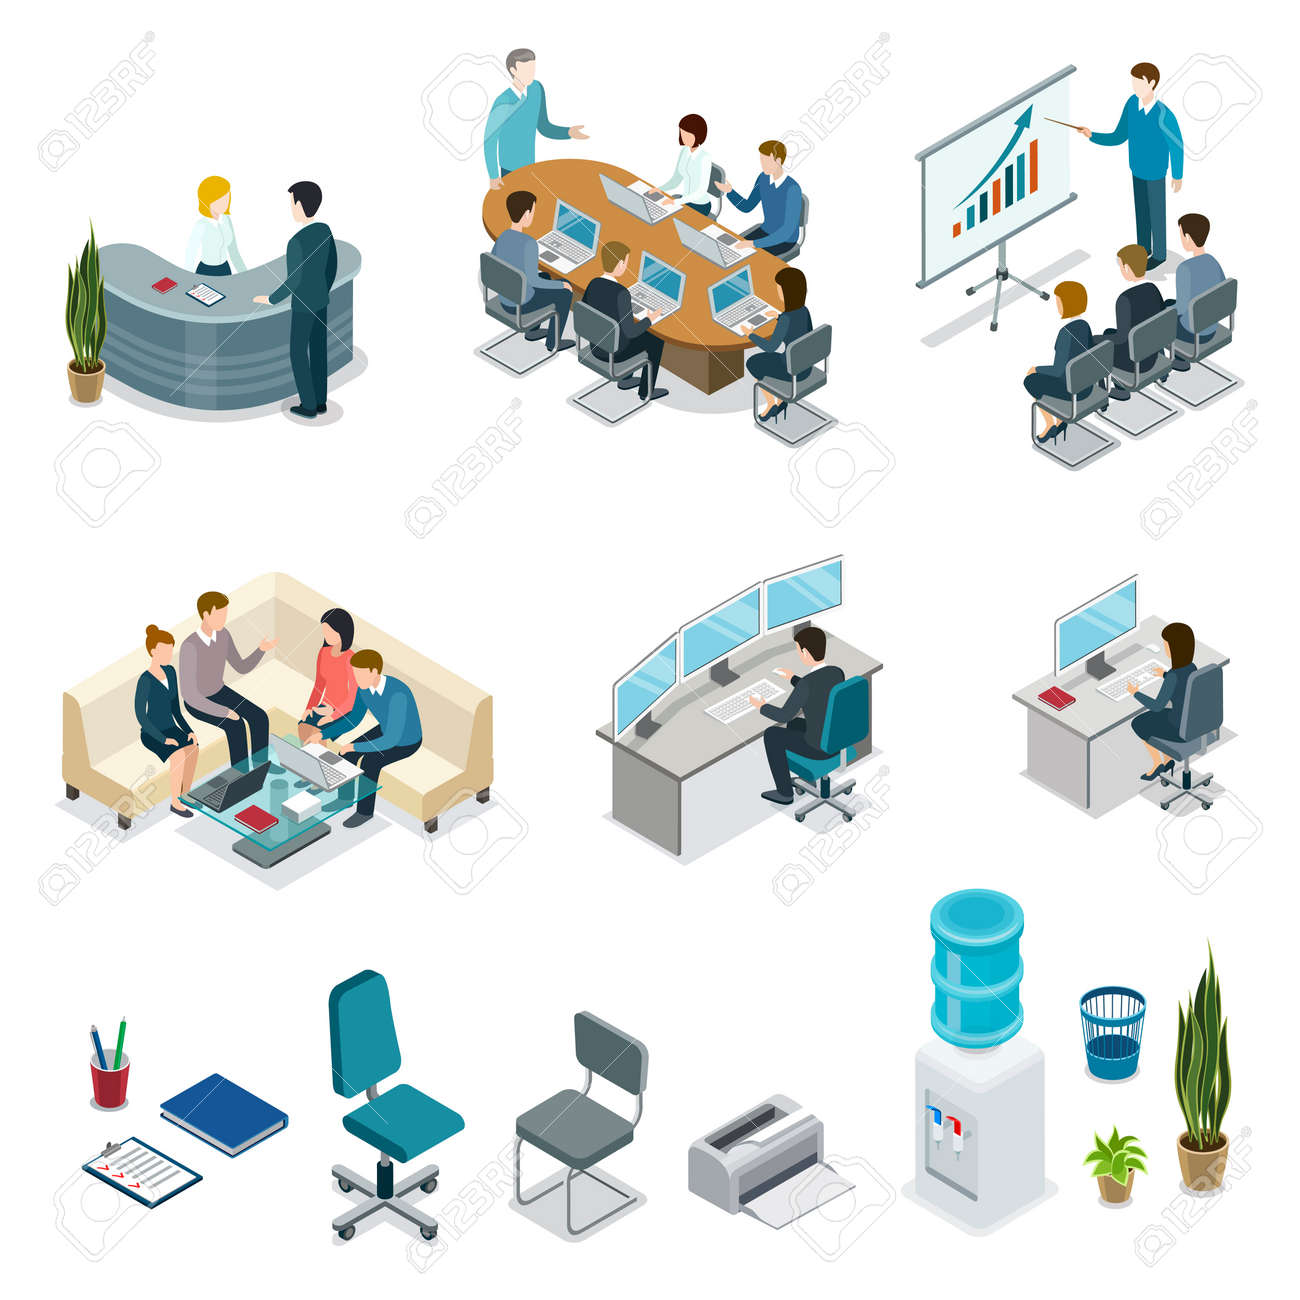 Corporate Office Life Isometric 3D Set. Teamwork And Idea Generation,  Business Presentation With Diagrams